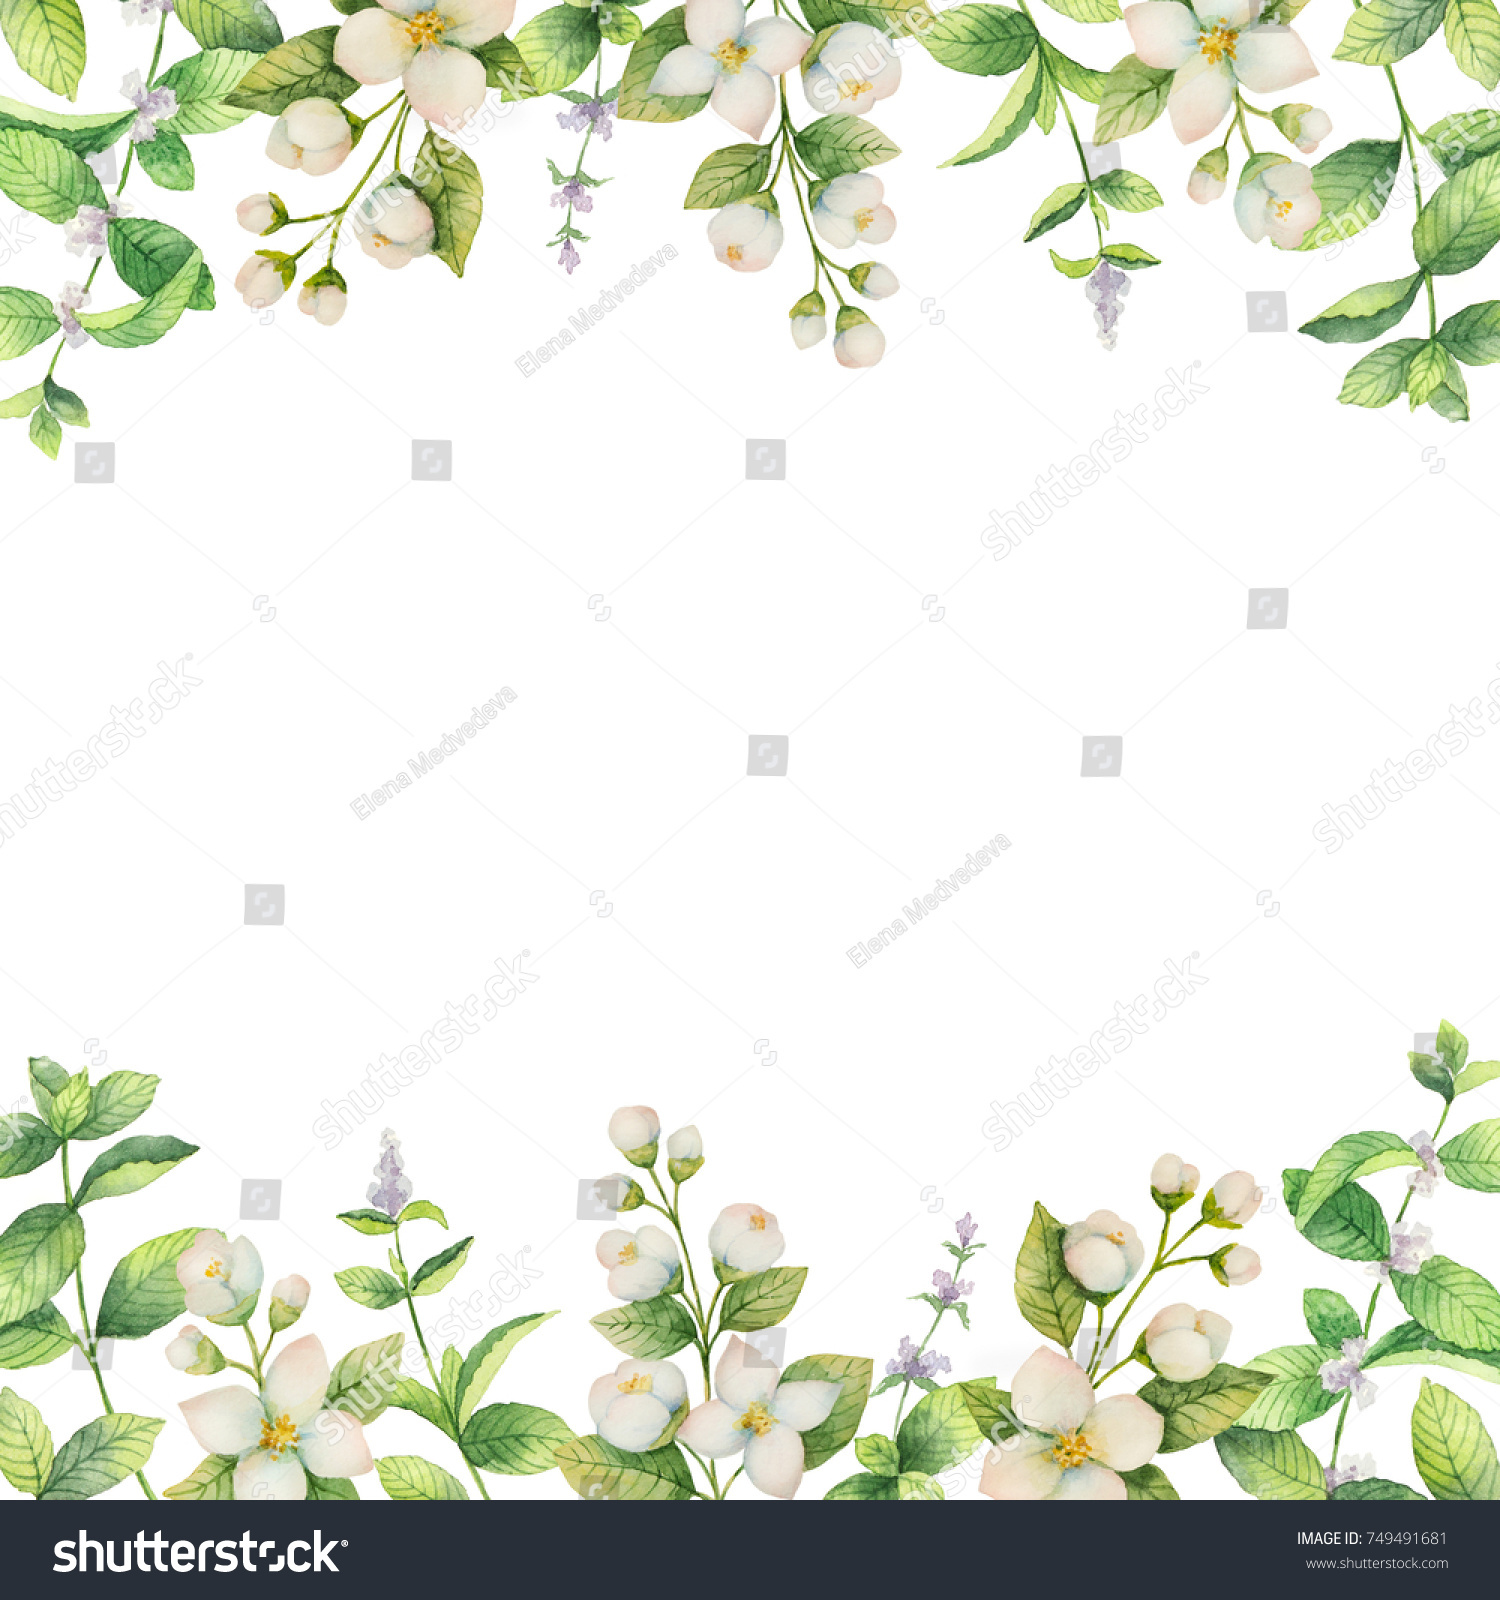 Watercolor Frame Flowers Jasmine Mint Branches Stock Illustration